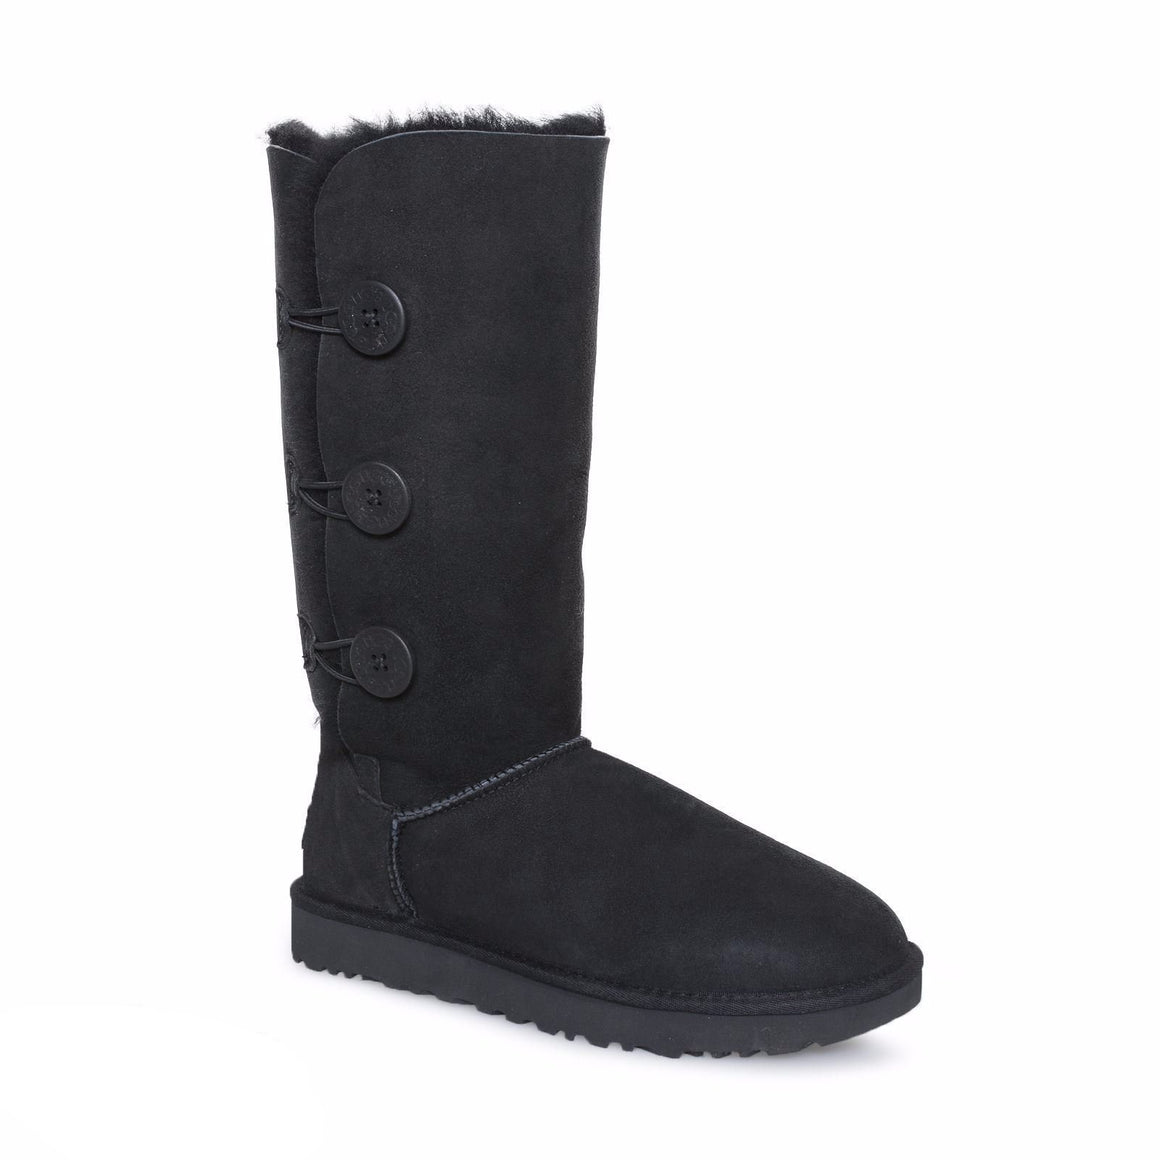 UGG Bailey Button Triplet II Black Boots - Kids